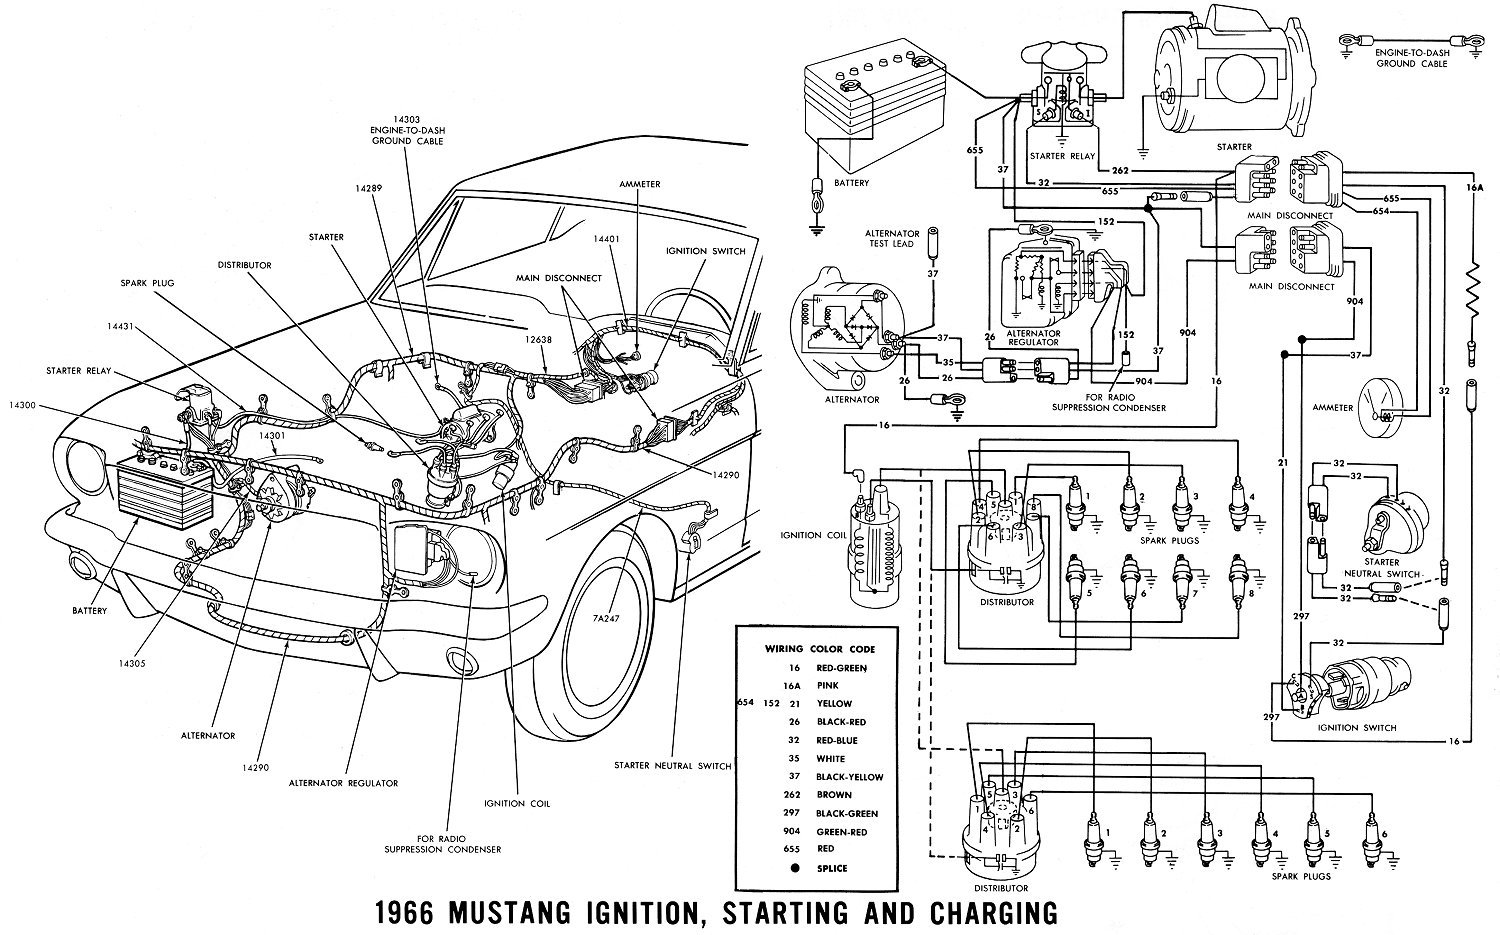 1966 Mustang Ignition Switch Diagram - What Pins are What?-66ignit.jpg